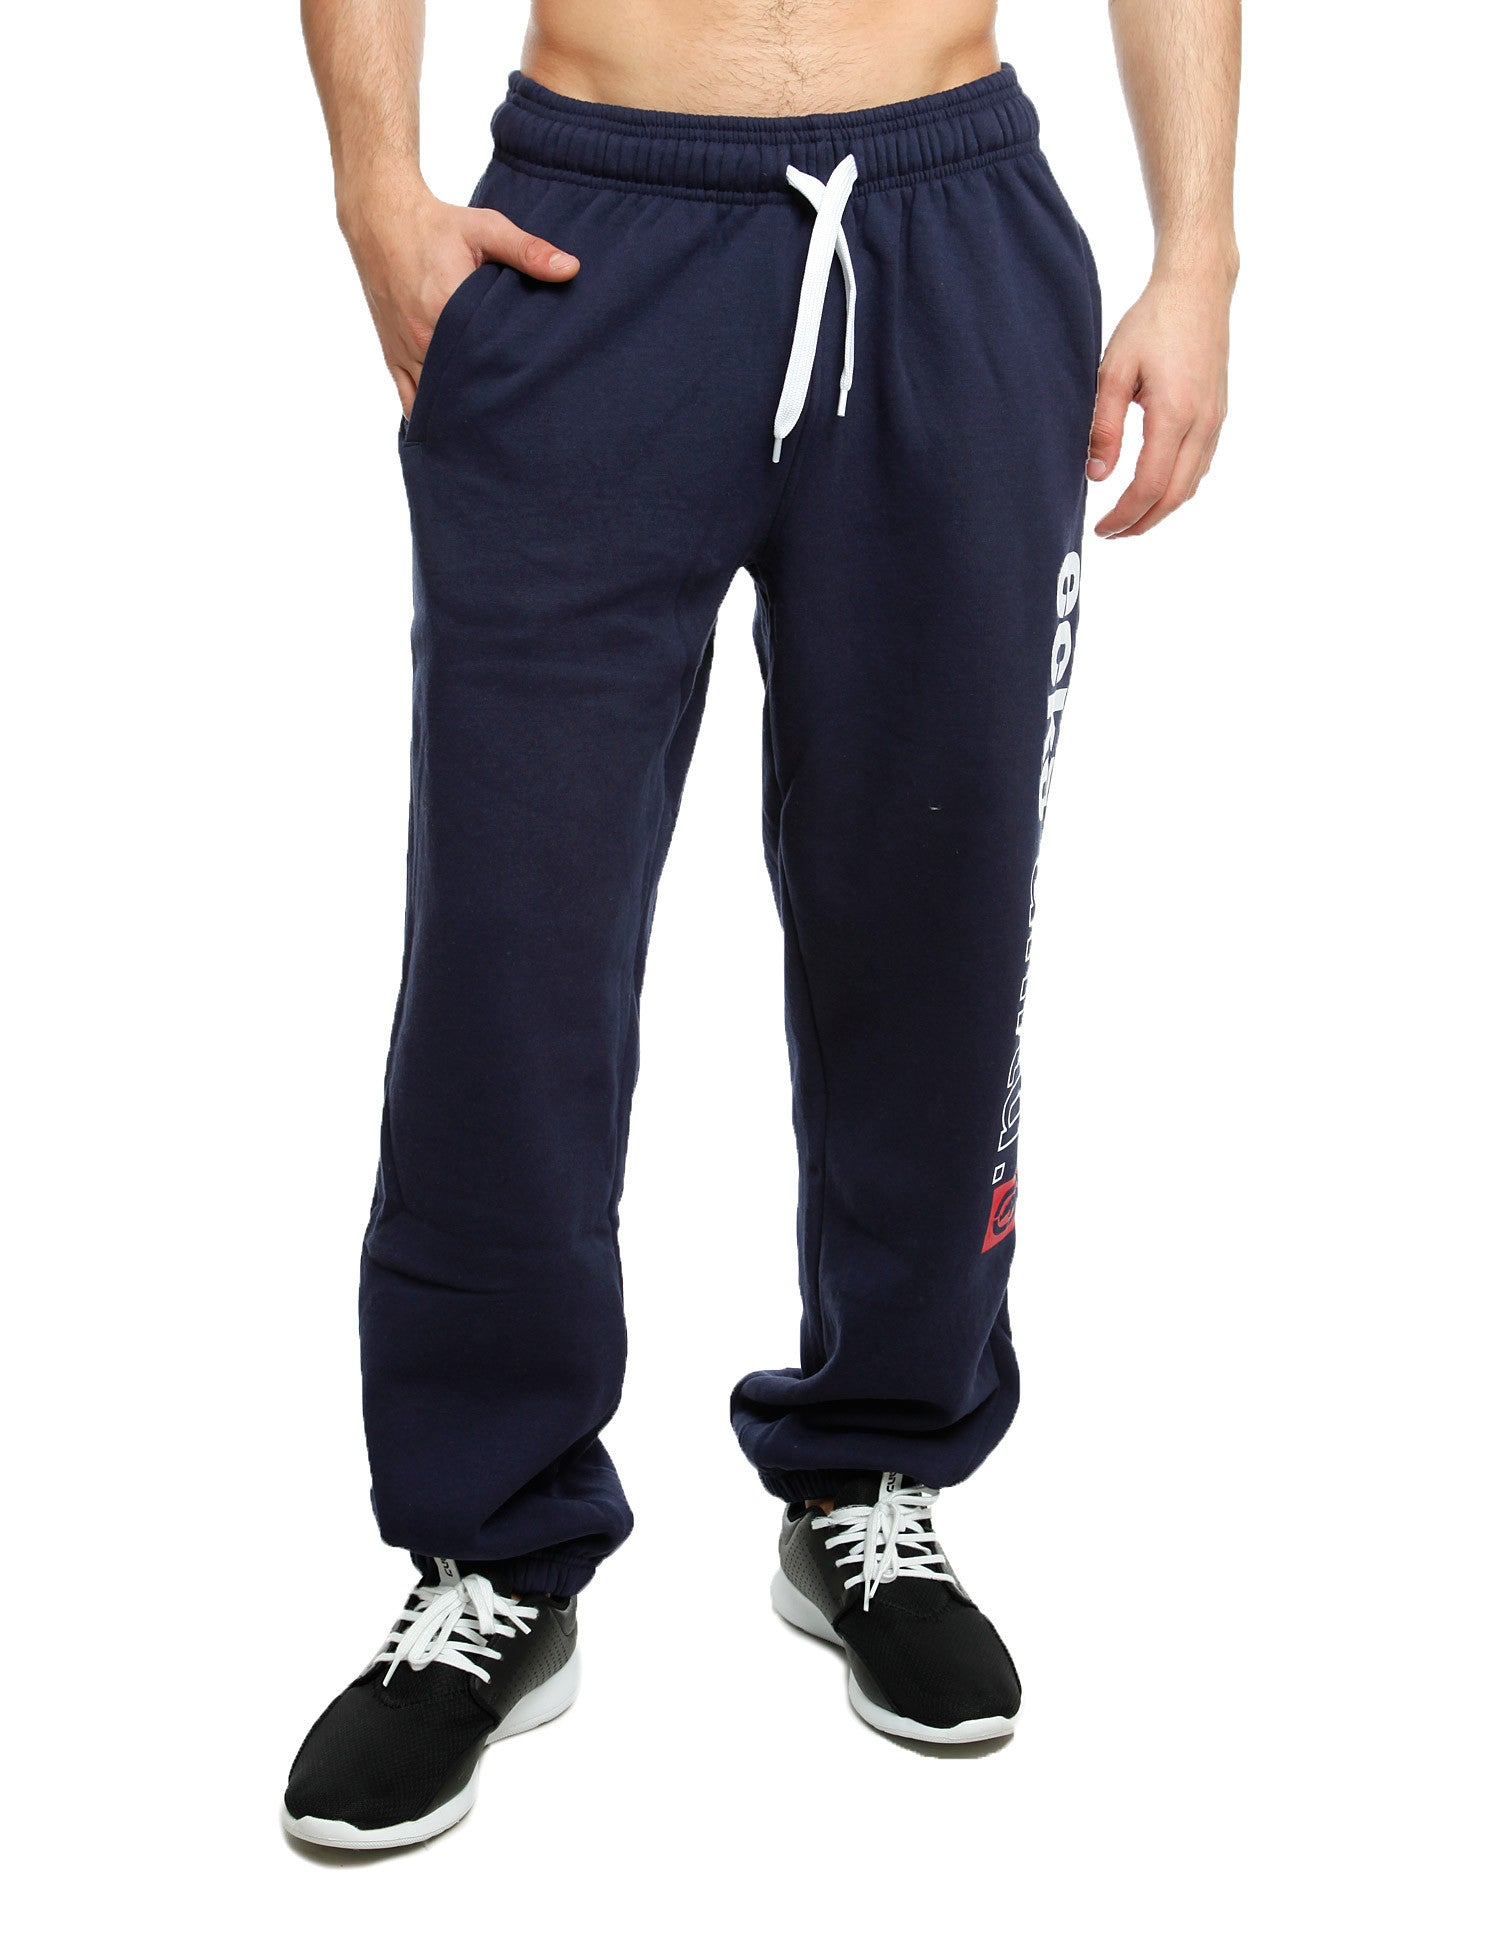 Image of Ecko Sweatpants Ilford Navy Blue